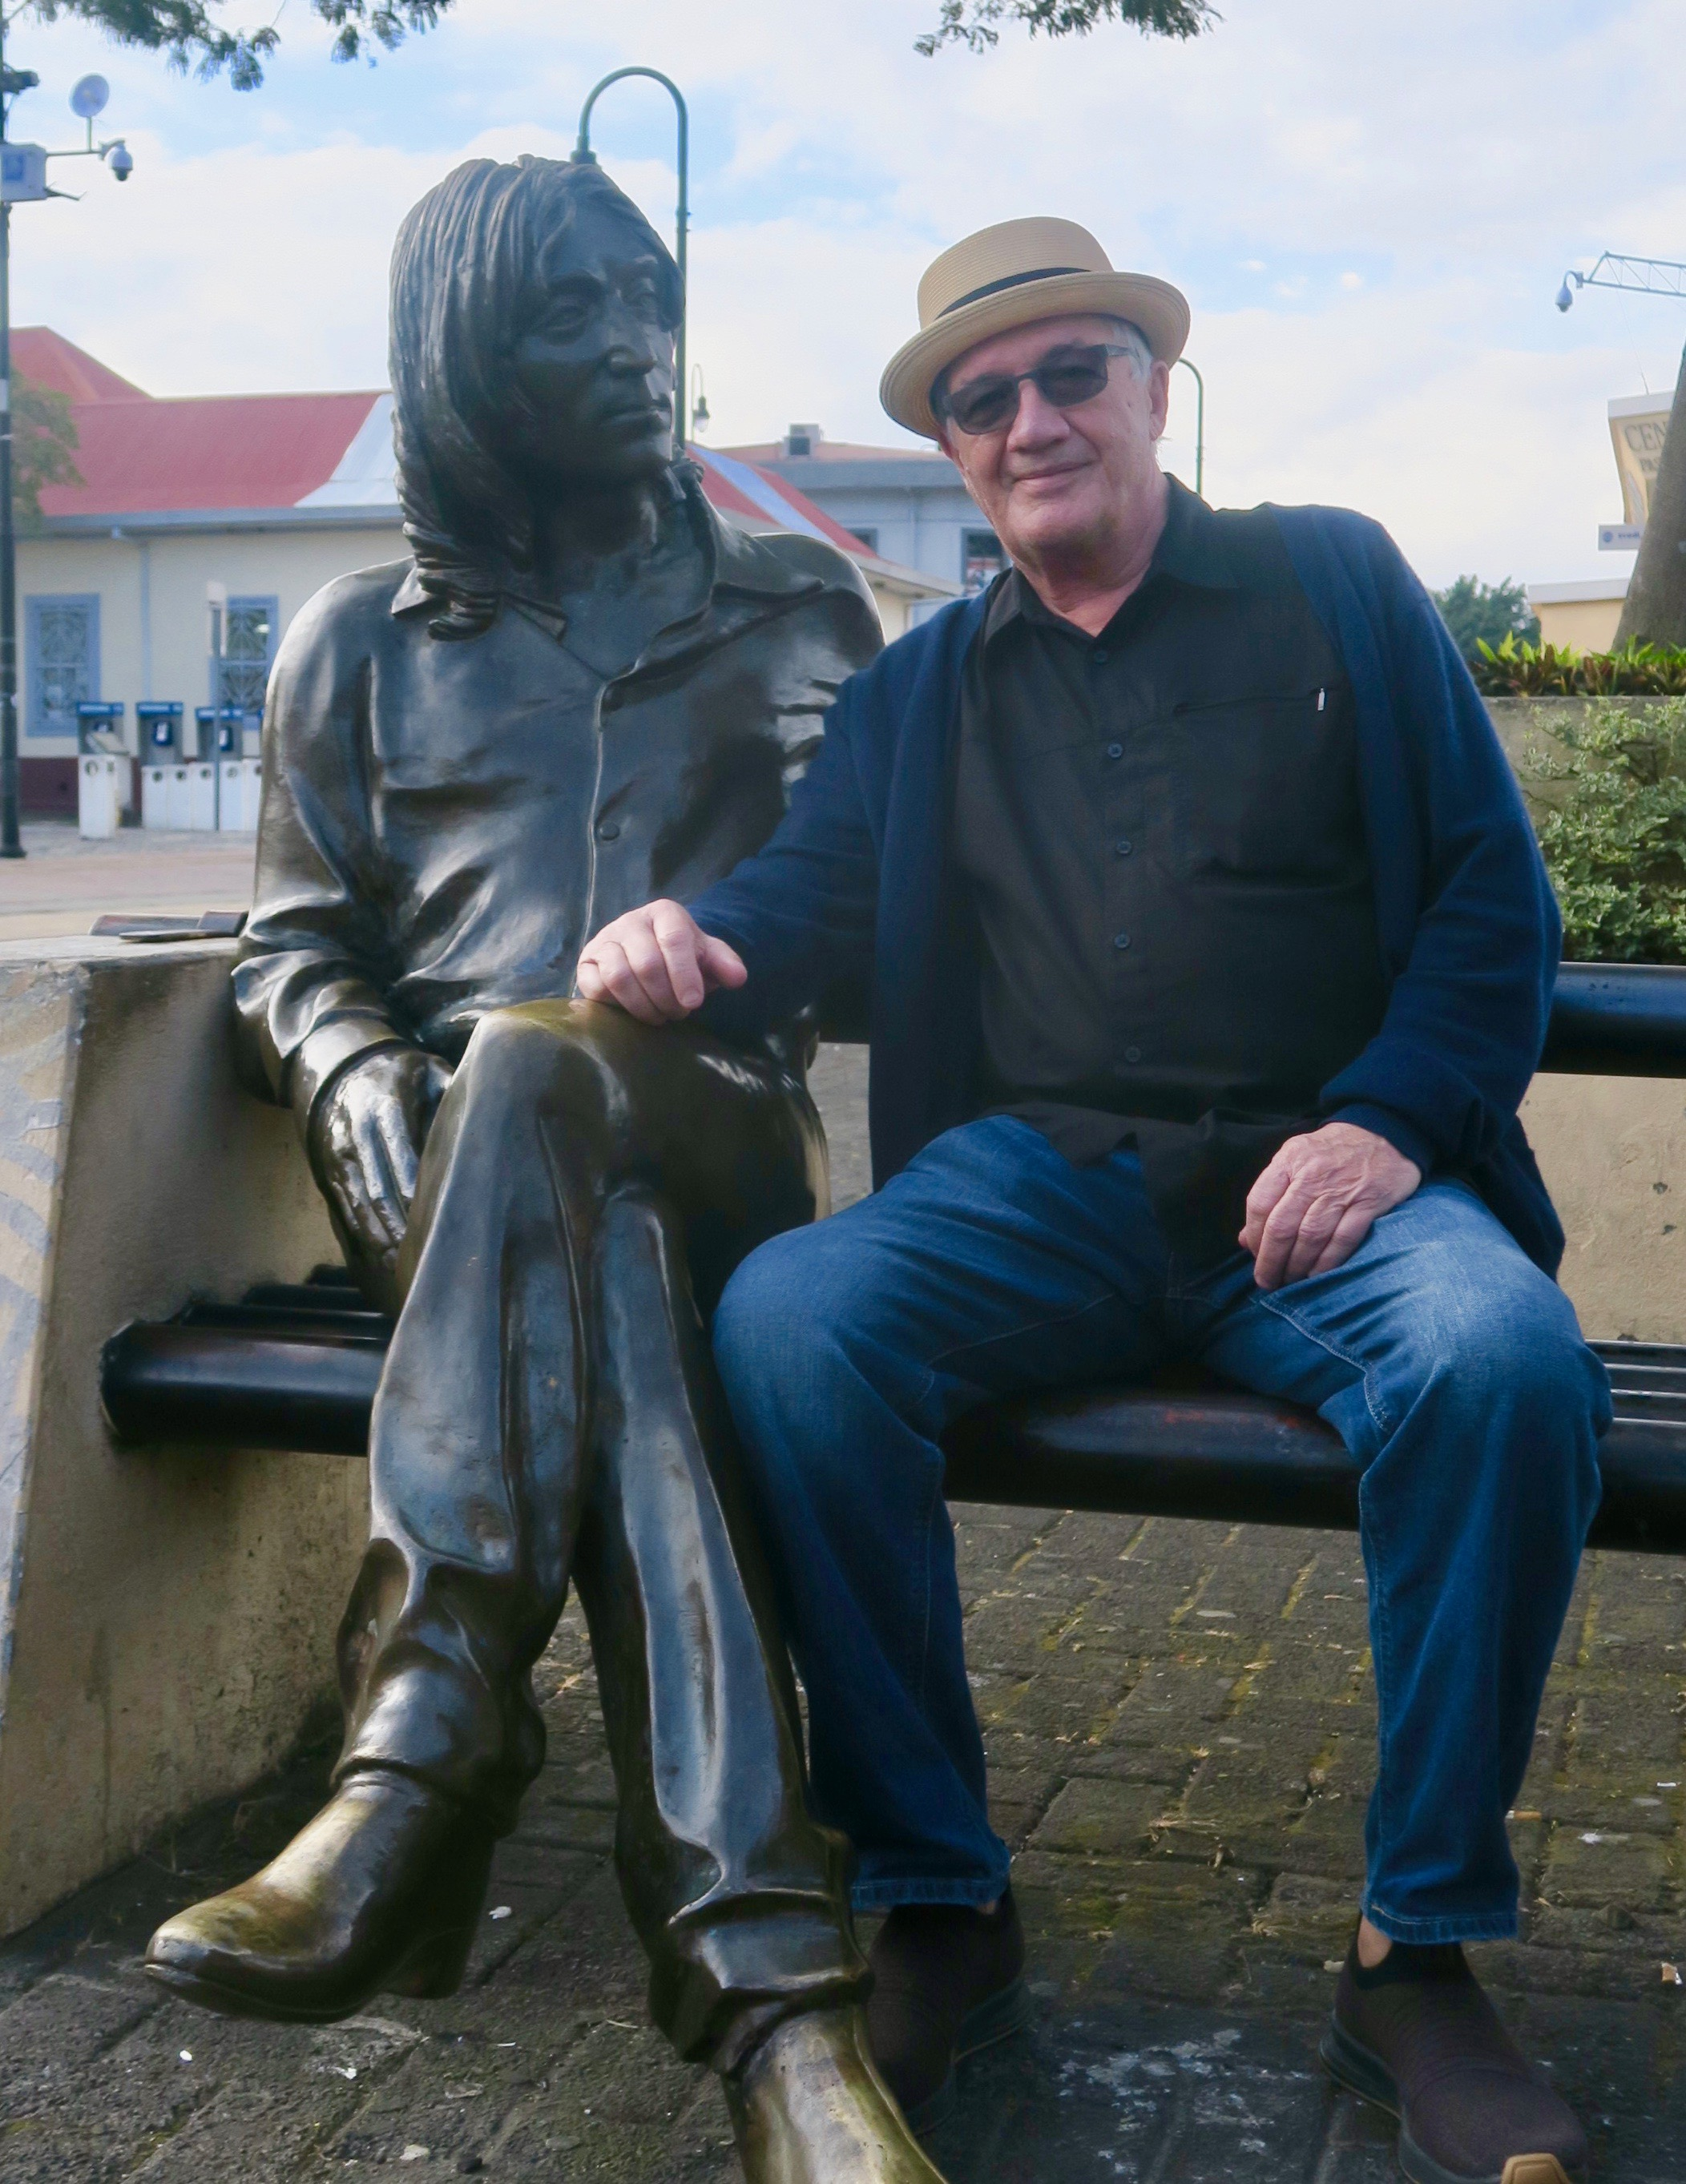 With John Lennon in San Jose